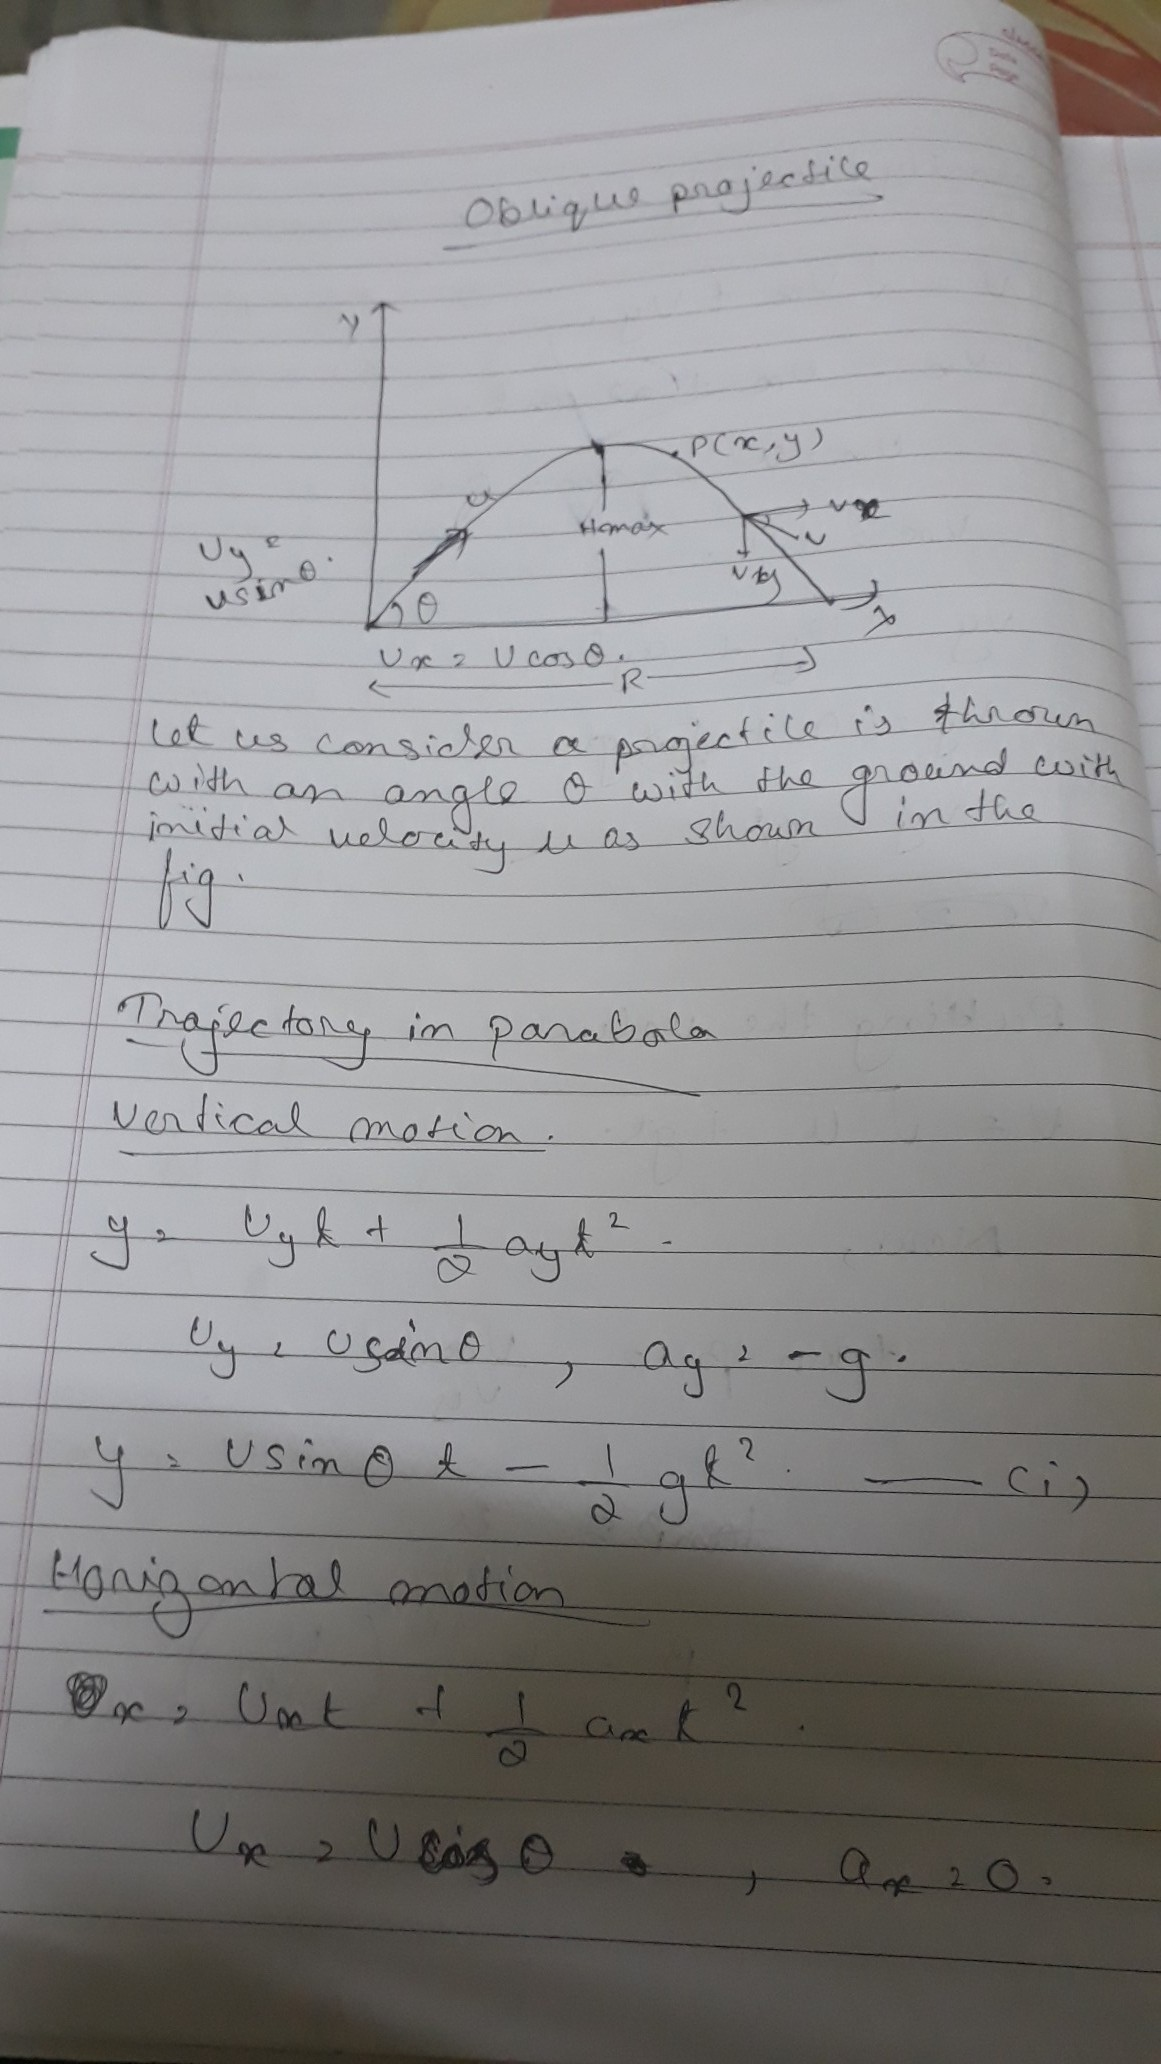 Show That The Path Of Projectile Is A Parabola In The Case